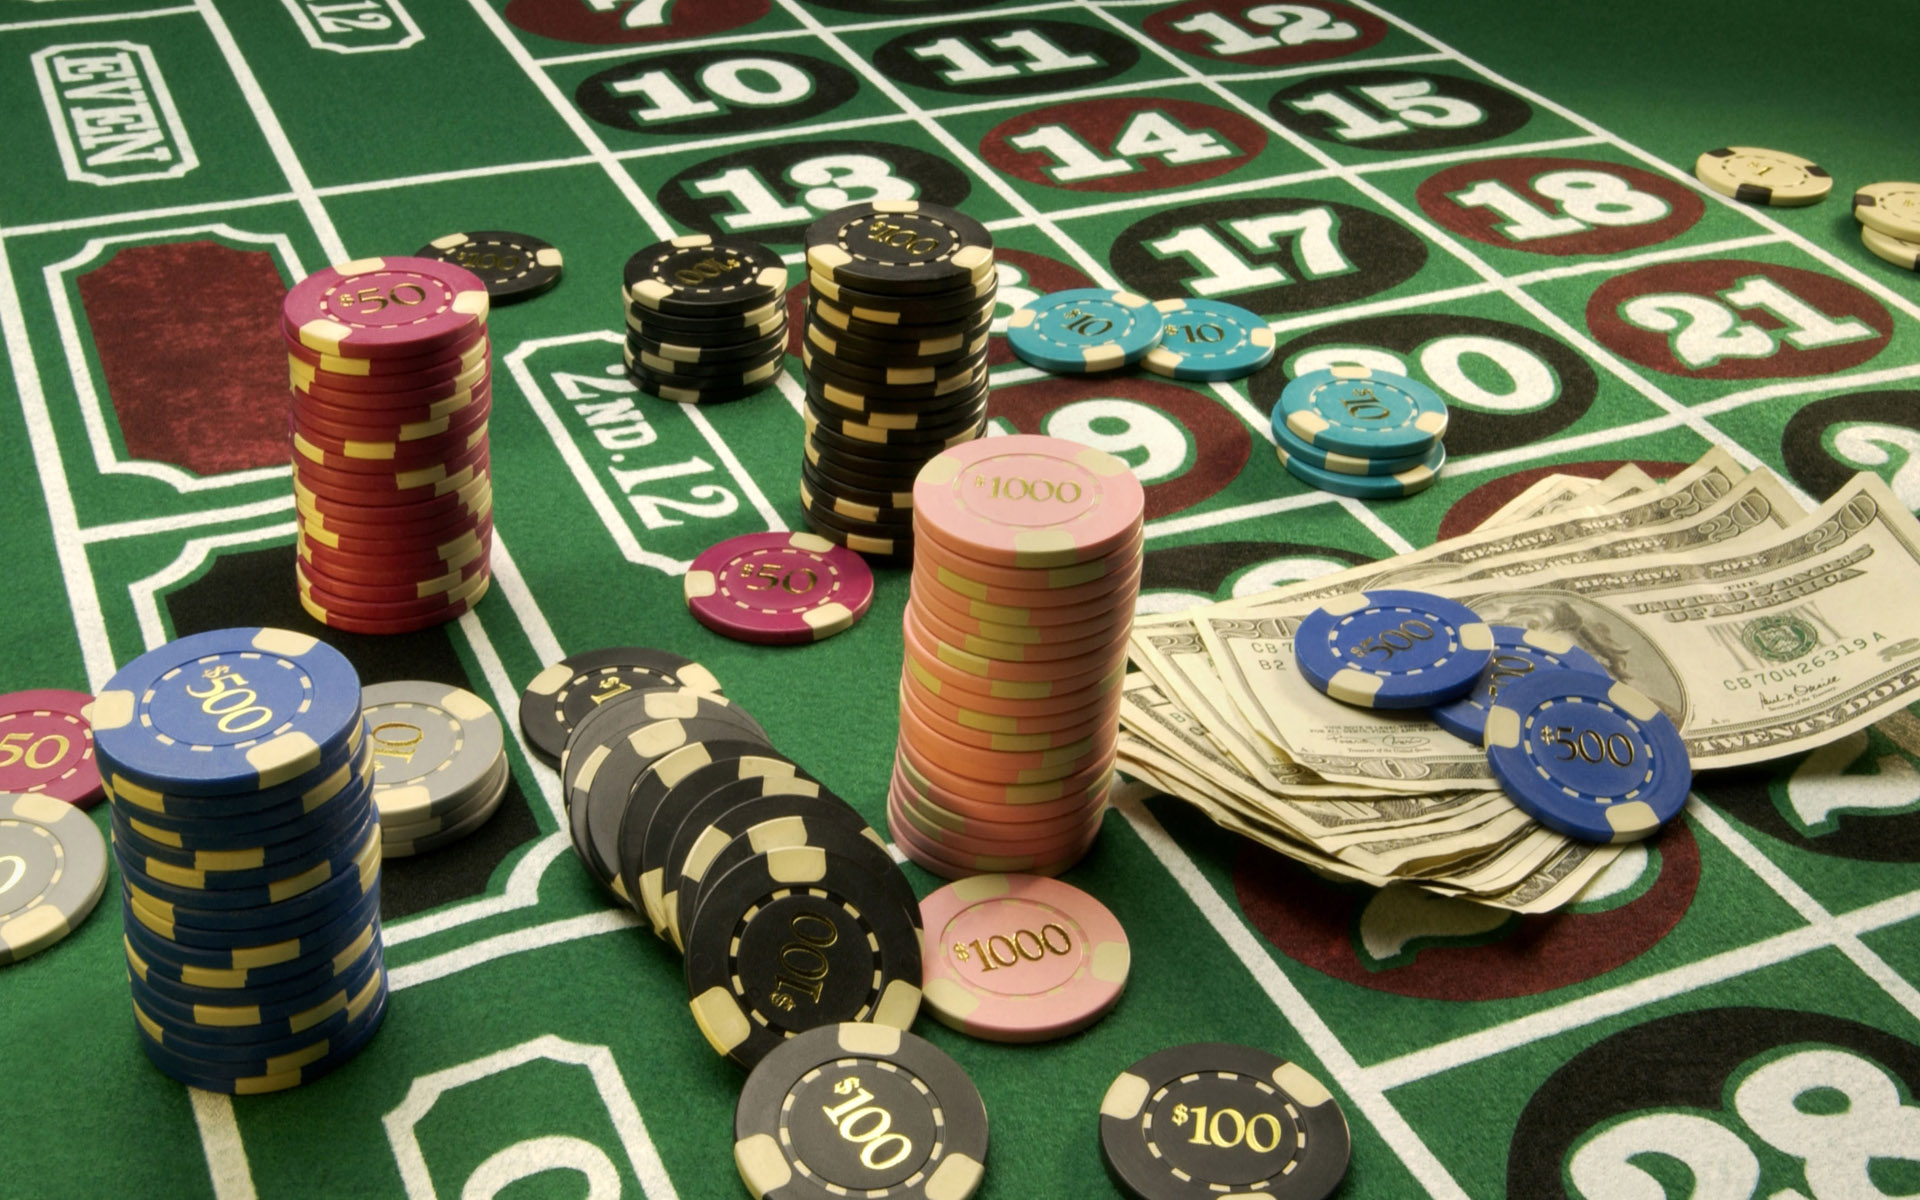 High Stakes Poker Outcomes, Poker News, Poker Bargains